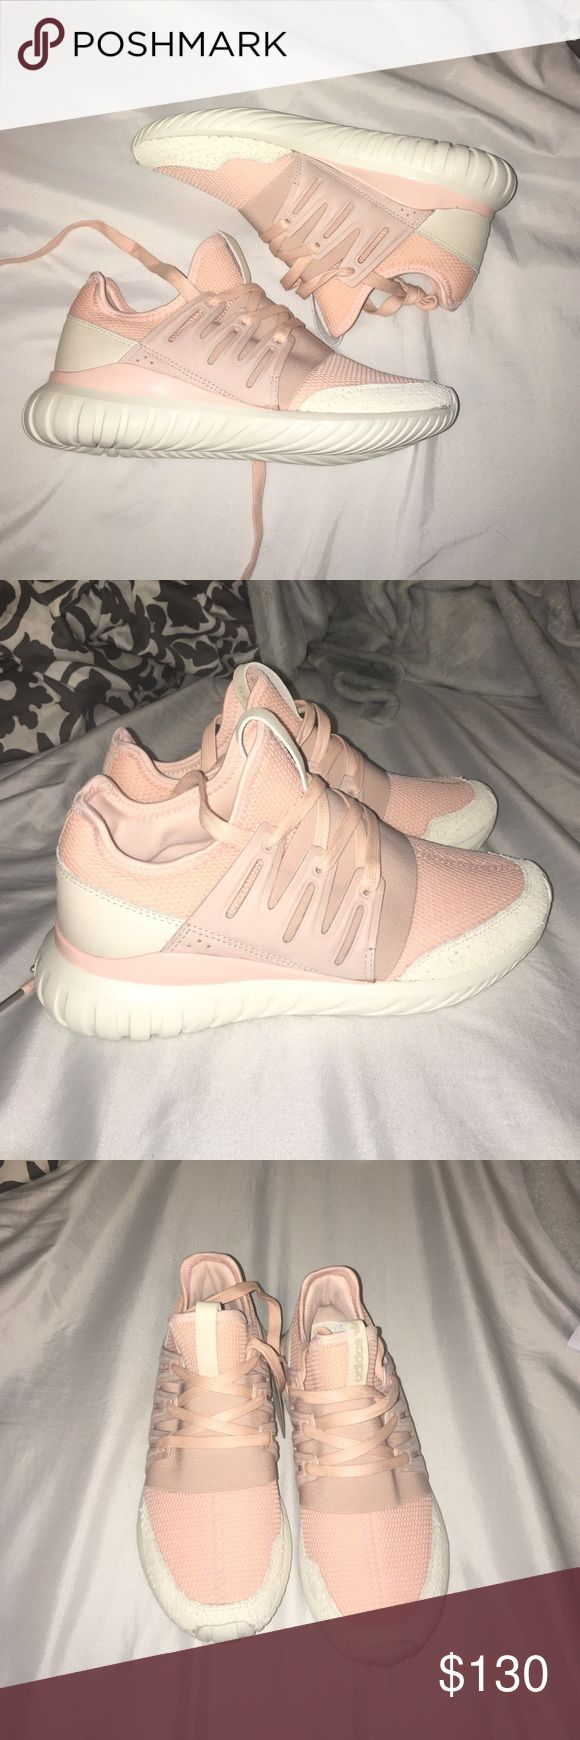 Adidas Blush Pink Tubular Custom Size 8.5 I just got these in the mail and I am so upset I have to sell them. These are brand new and I ordered a size too big!  these are 8.5 but could fit a size 9 no problem. custom made. Tubular Radial | Heel overlay: off white | Toe overlay: off white- structured leather | Binding: blush pink | Lining: blush pink - mesh material | Elastic Gore: blush pink | Stripes: blush pink | Vamp: blush pink -mesh material | Sole/midsole: blush pink | Out sole: off…